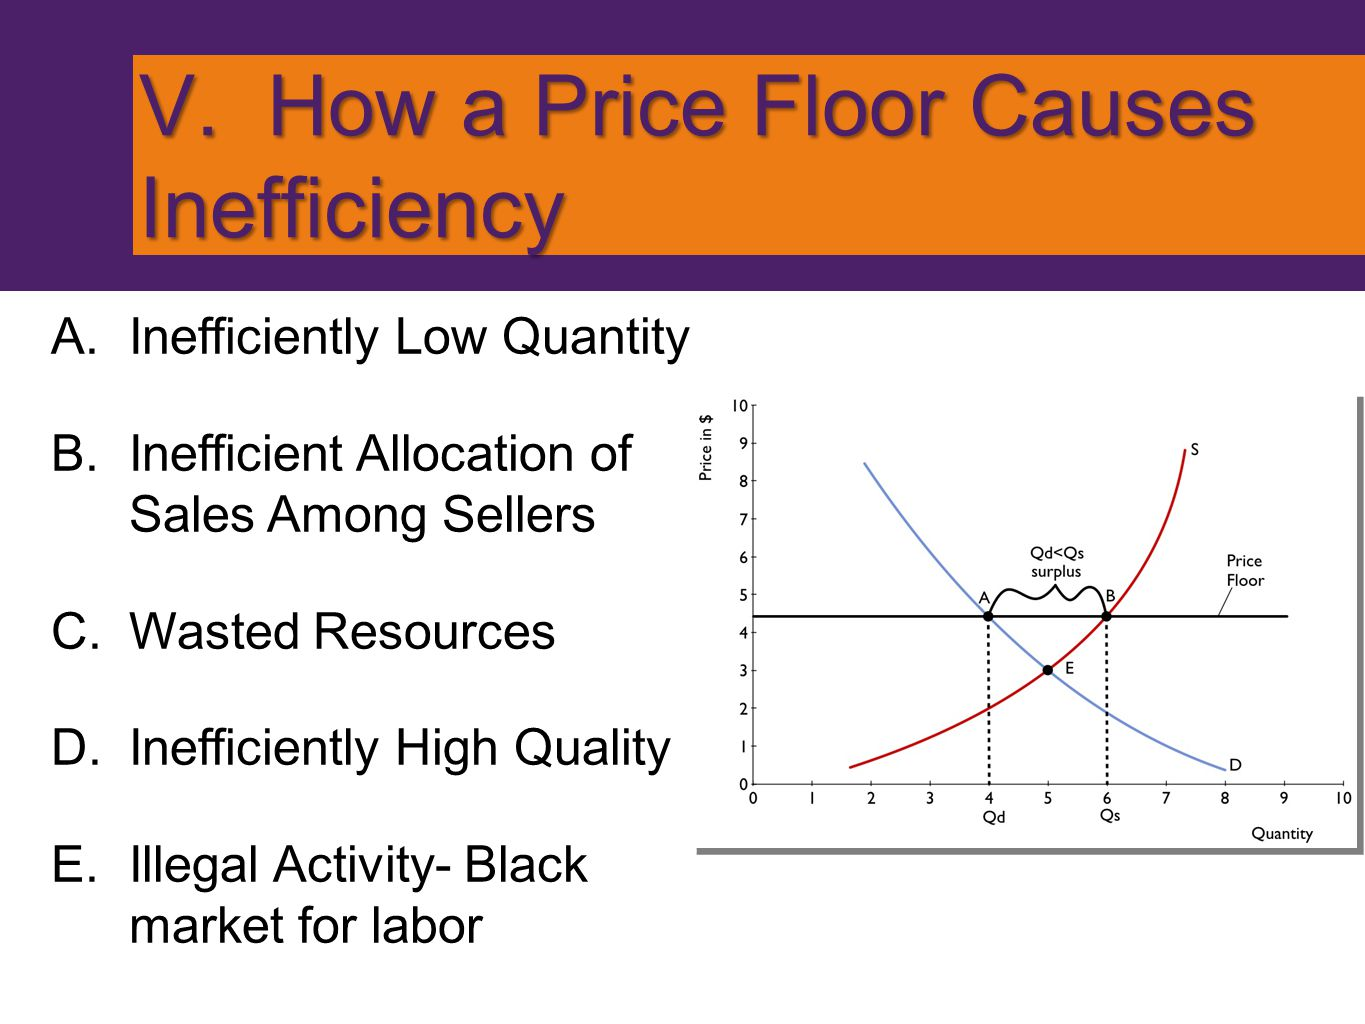 V. How a Price Floor Causes Inefficiency